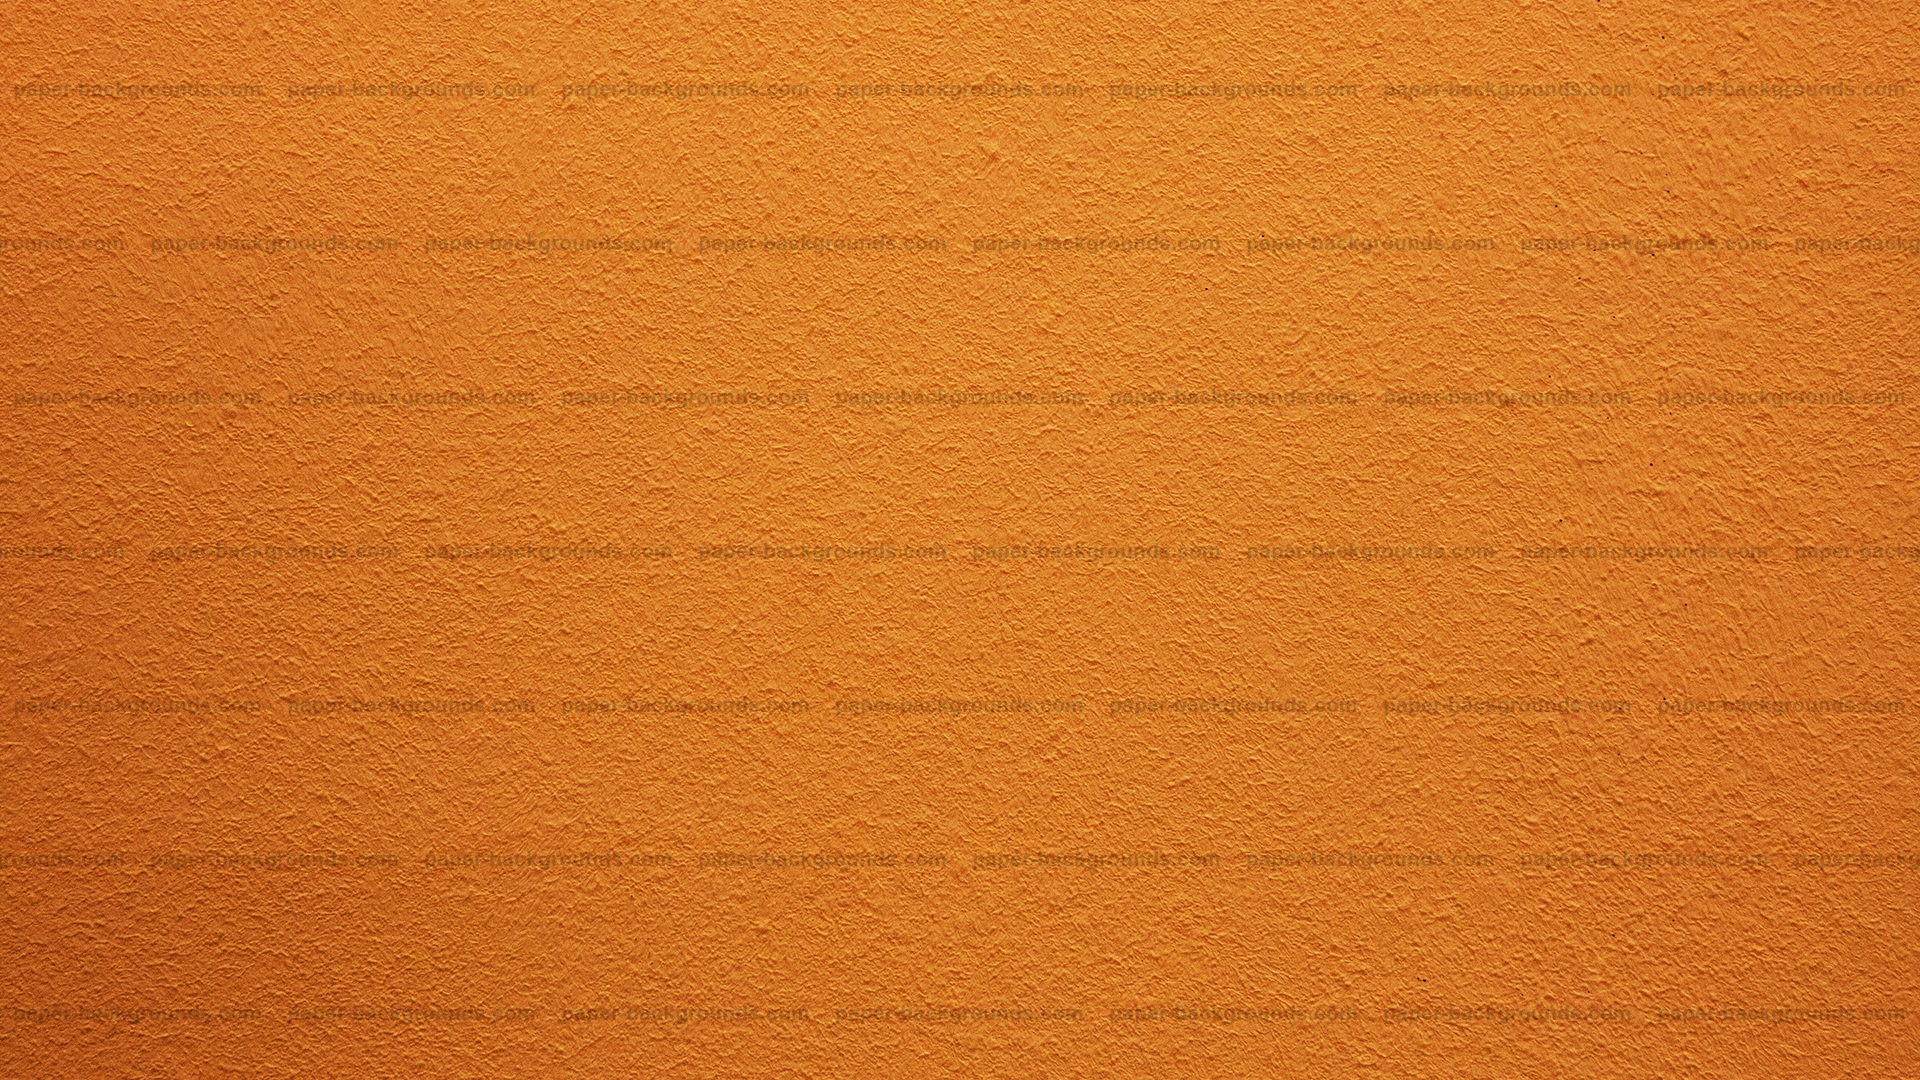 Orange Wall Texture HD 1920 x 1080p 1920x1080